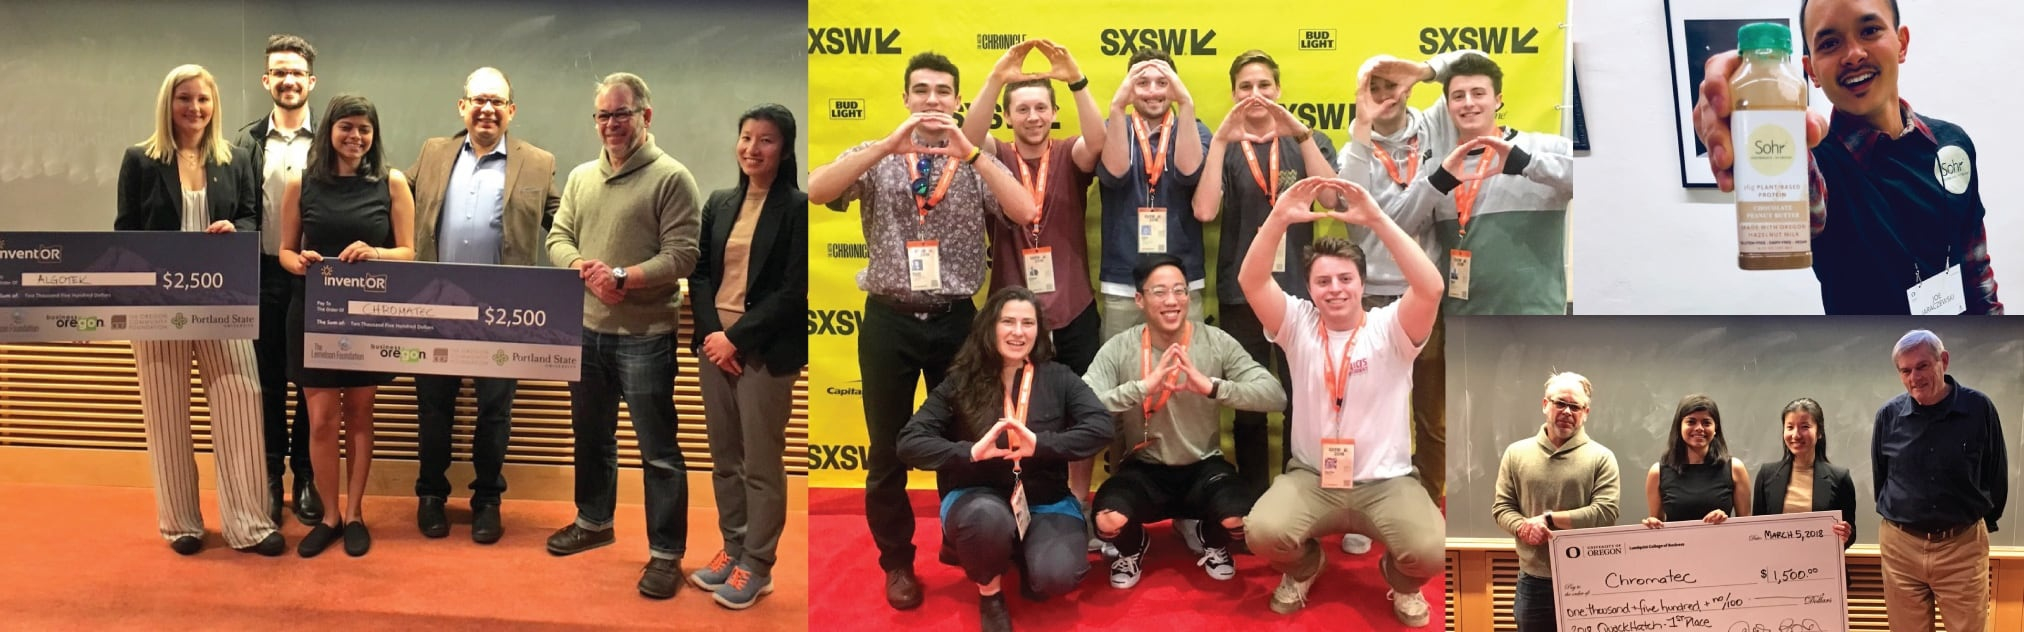 Collage of photos showing startups Chromatec, Algotek and, Sohr and students throwing the O at SXSW